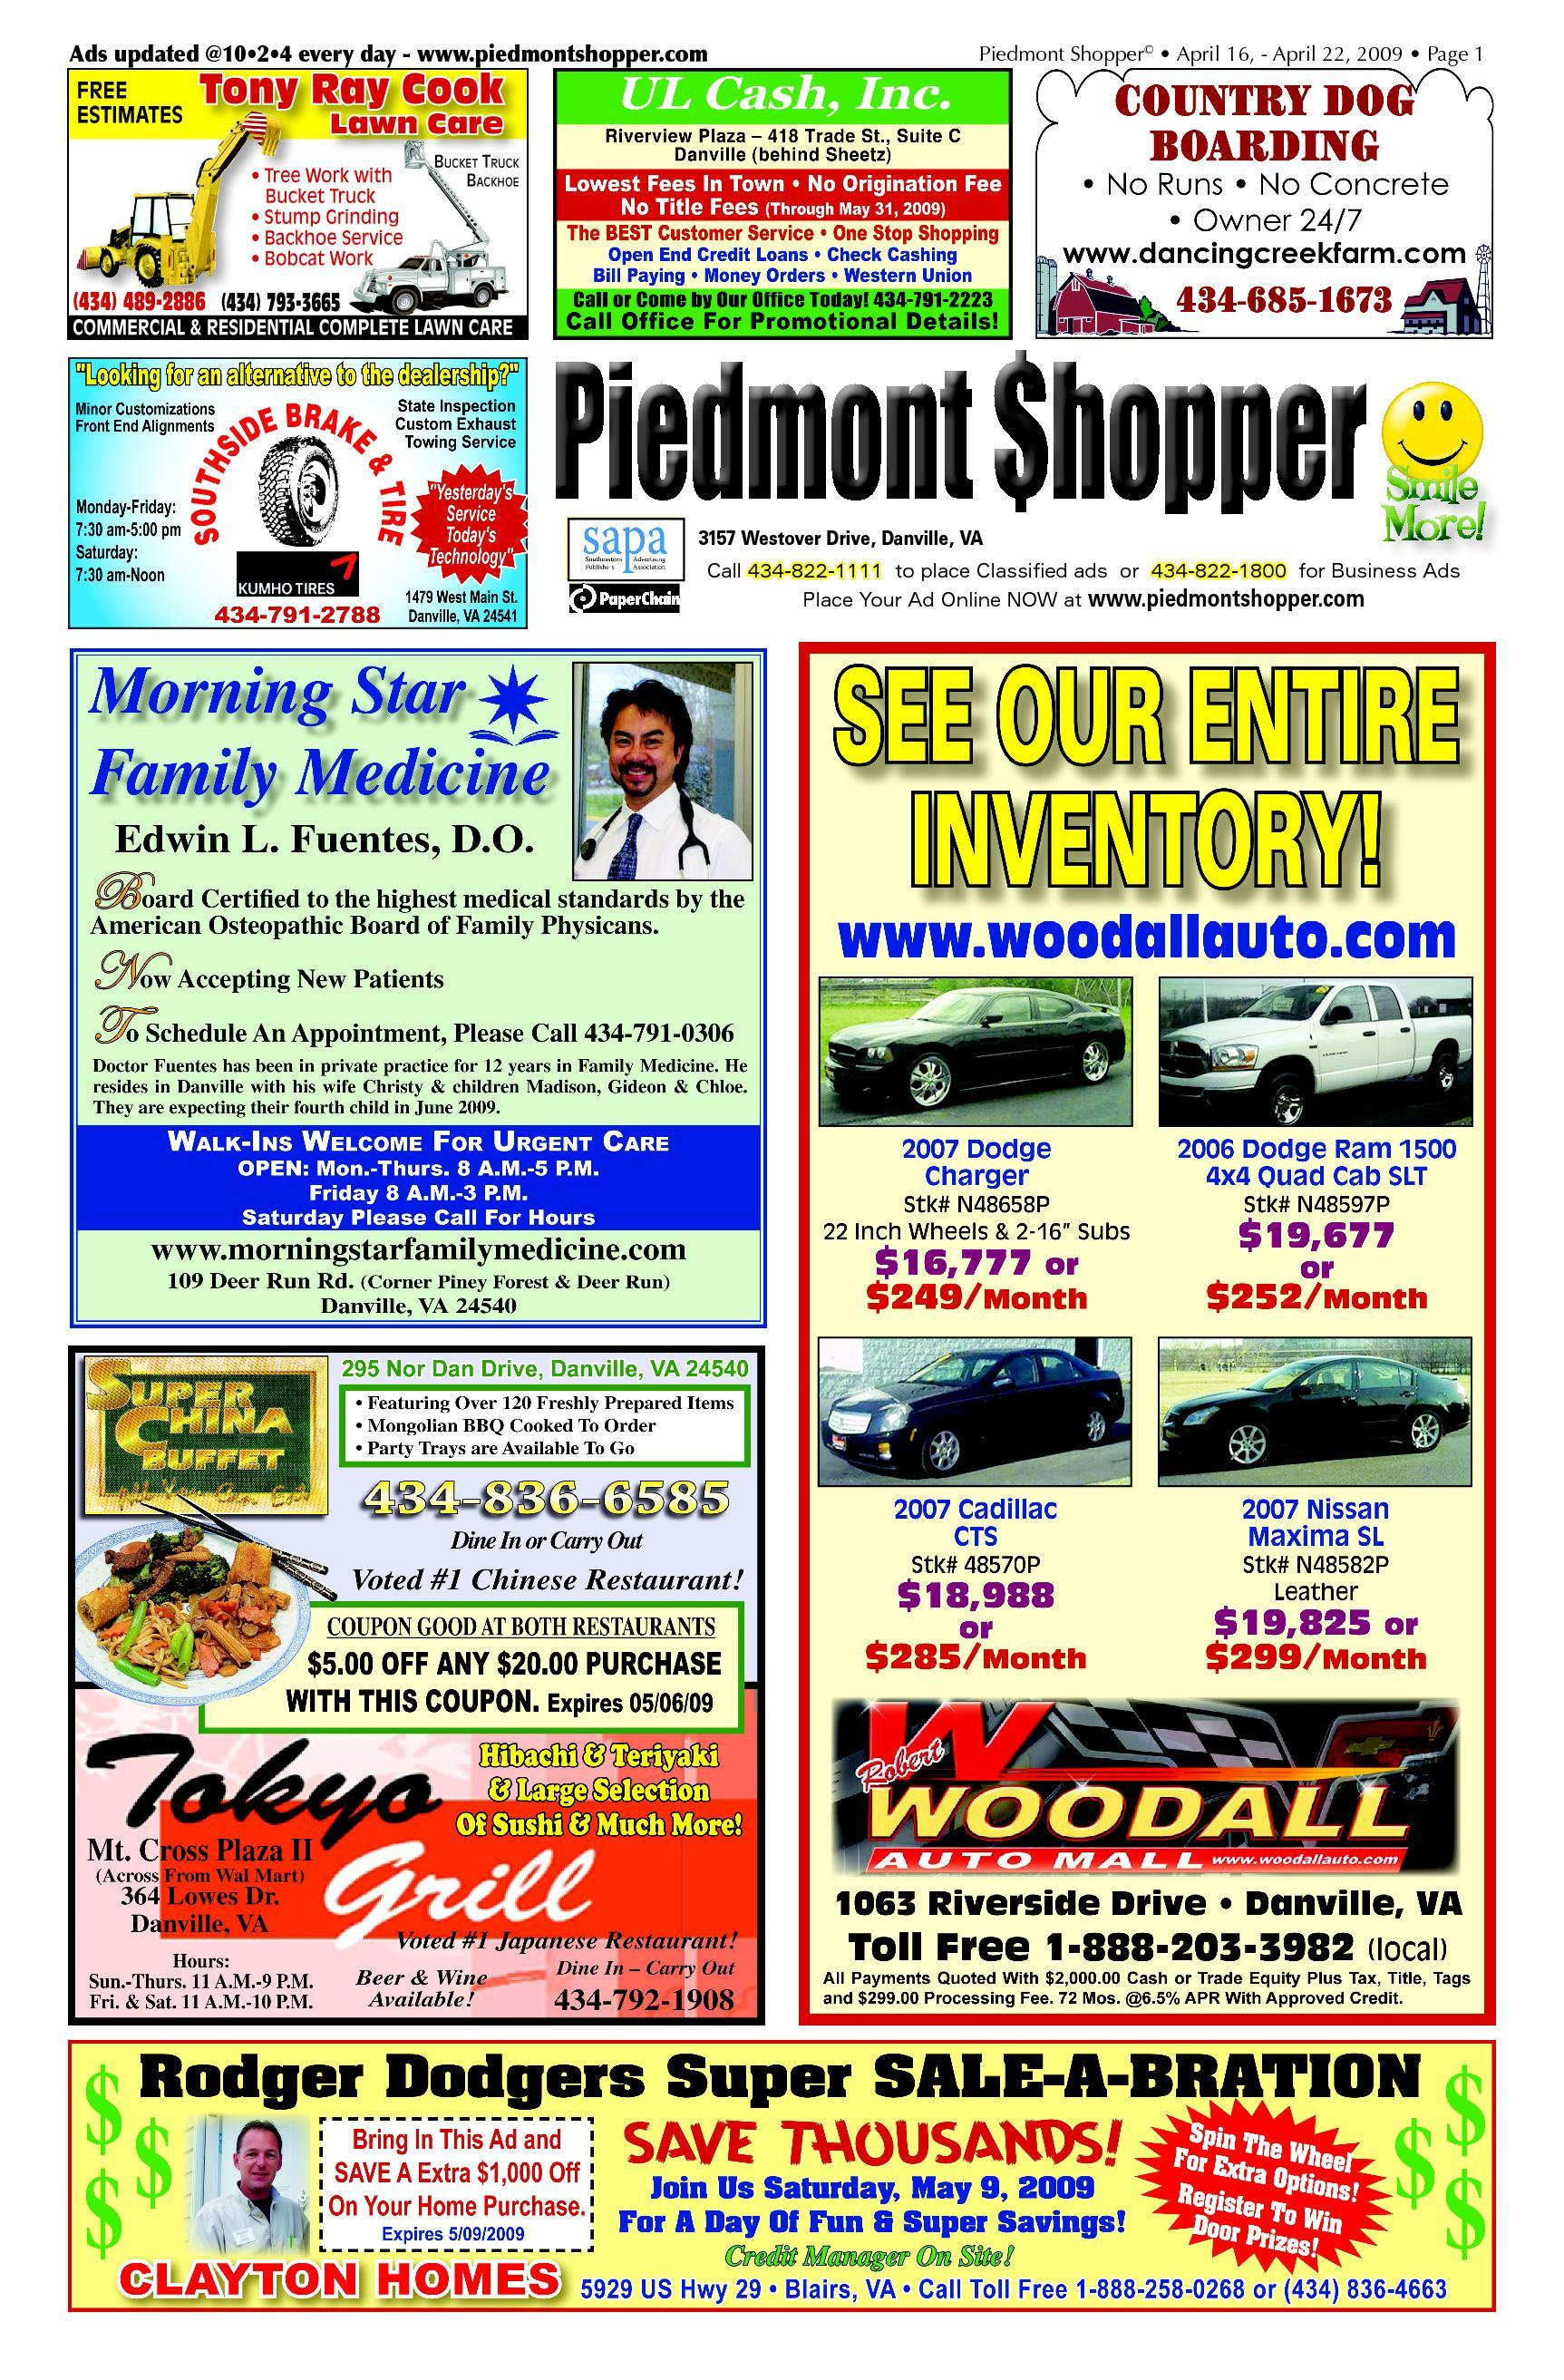 Piedmont Shopper 4.16.09 by ALAN LINGERFELT - issuu 38cdf2ca2dd1a